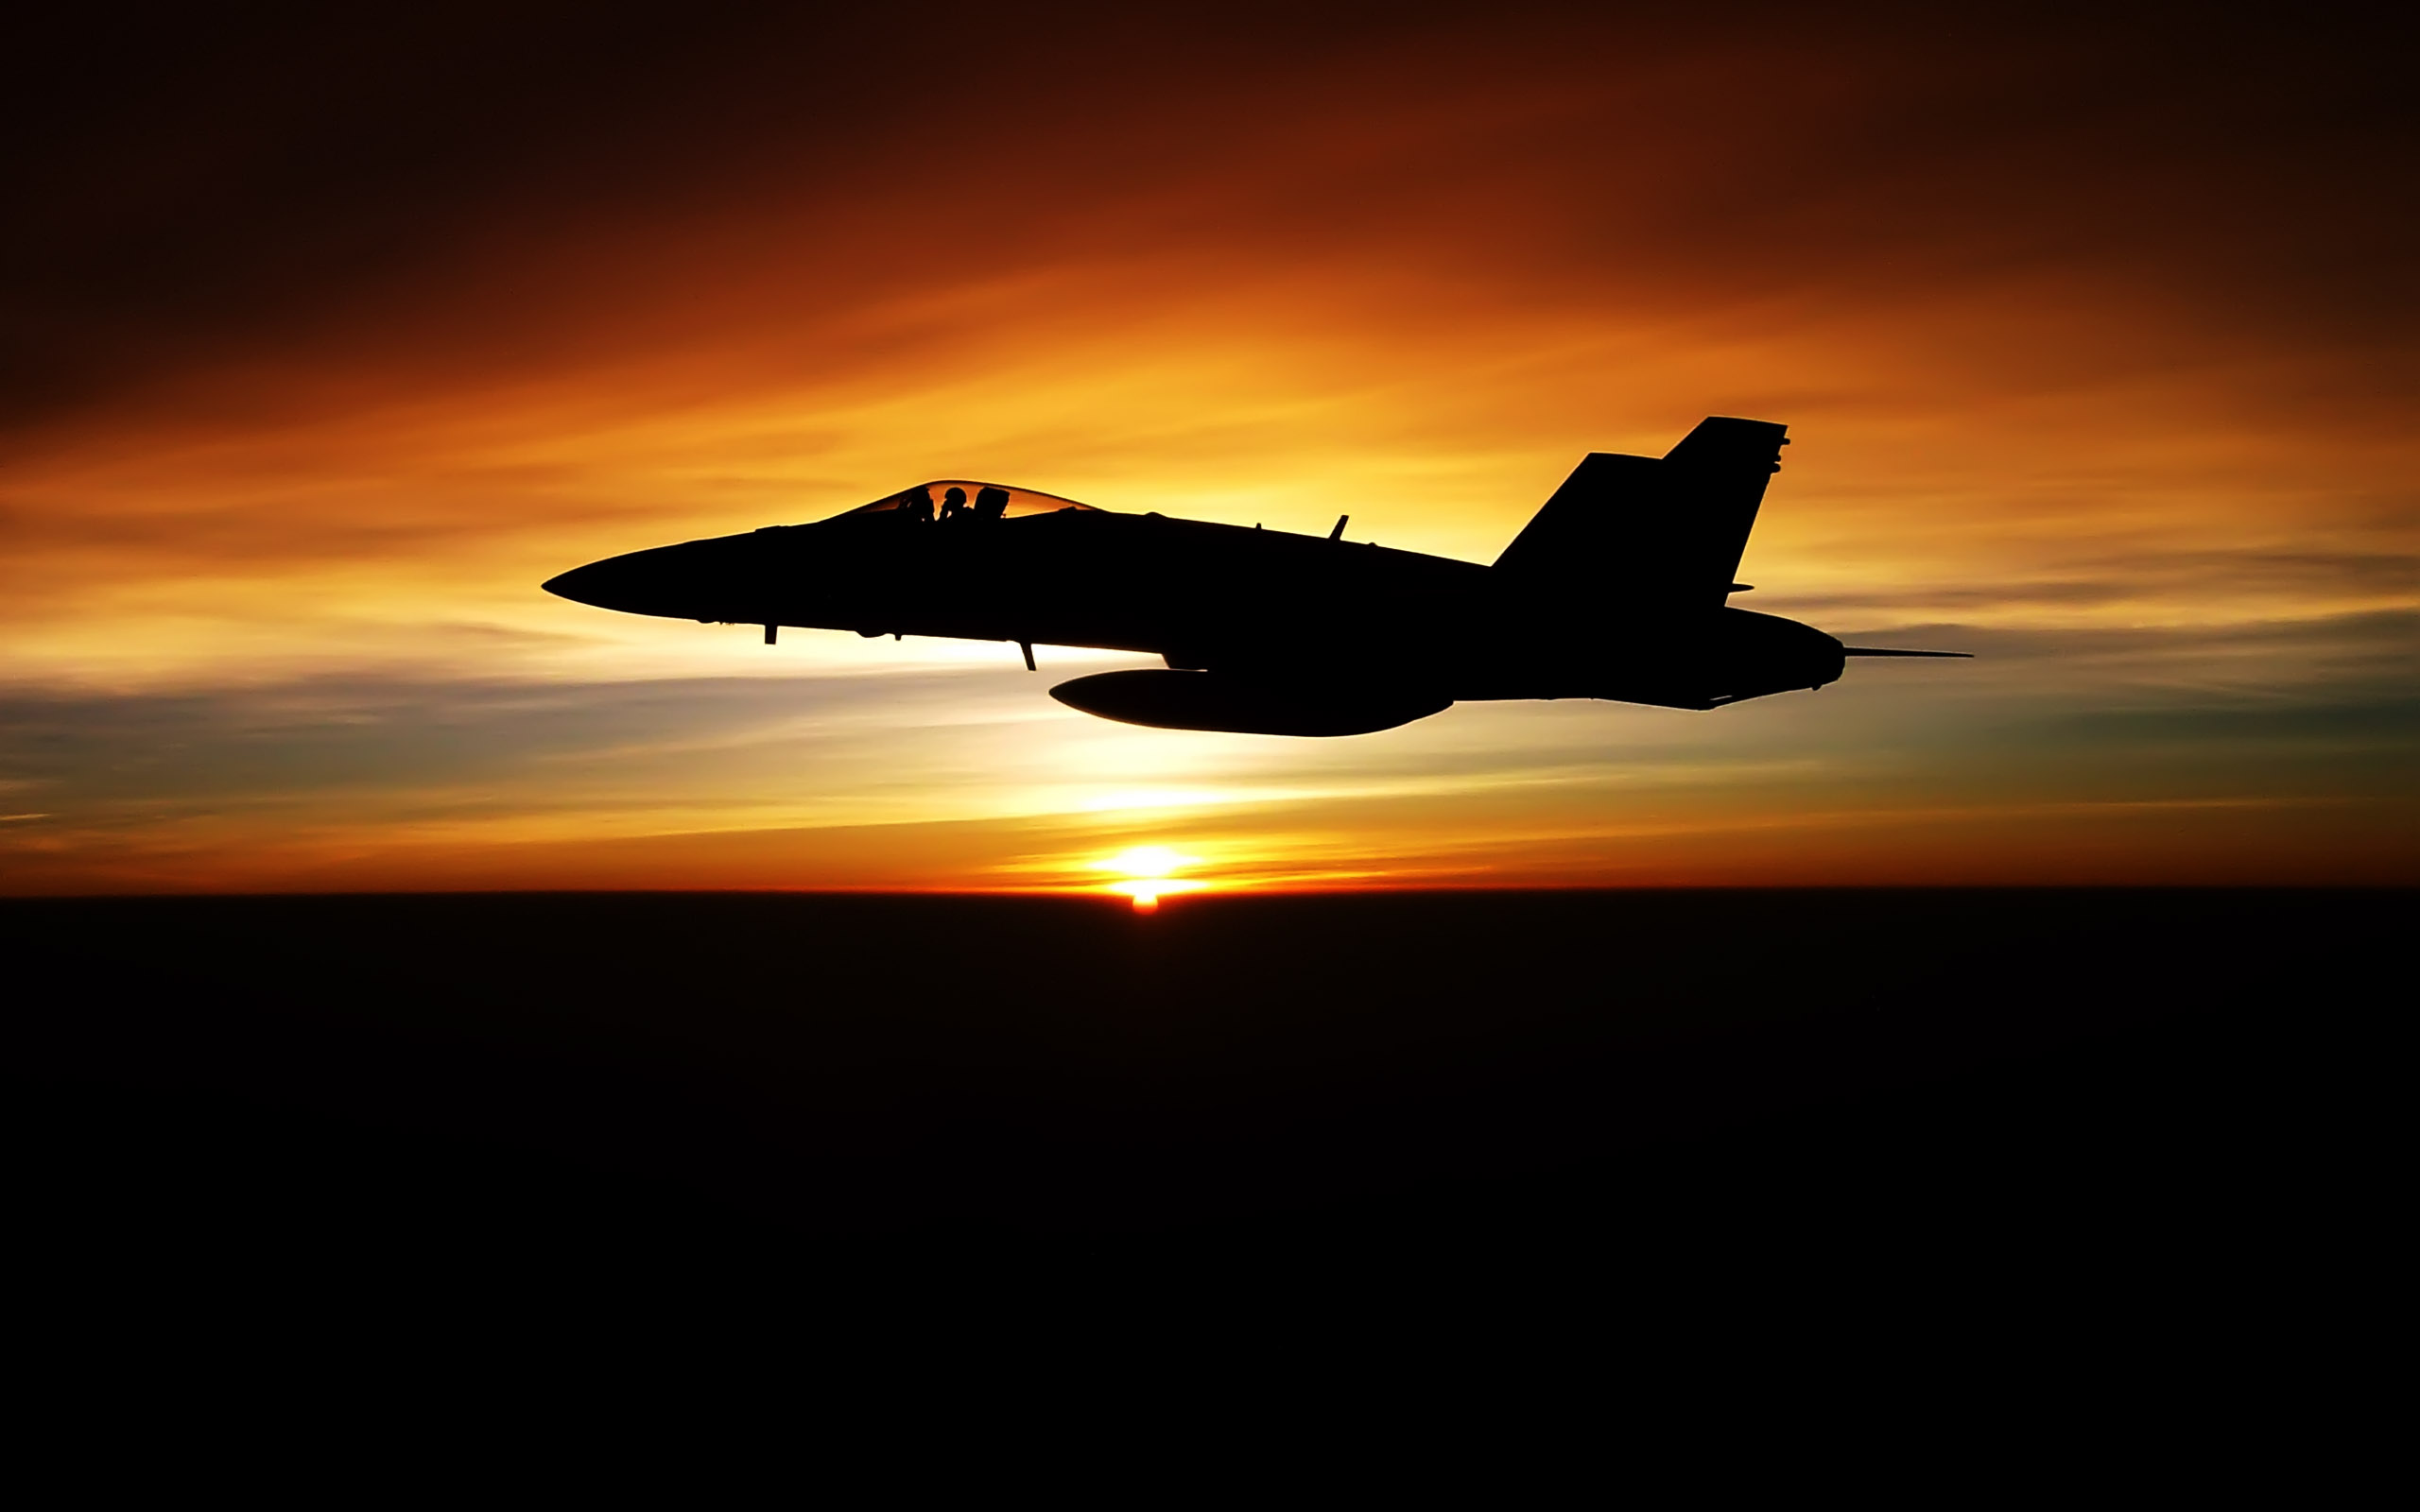 Fighter Jet Sunset